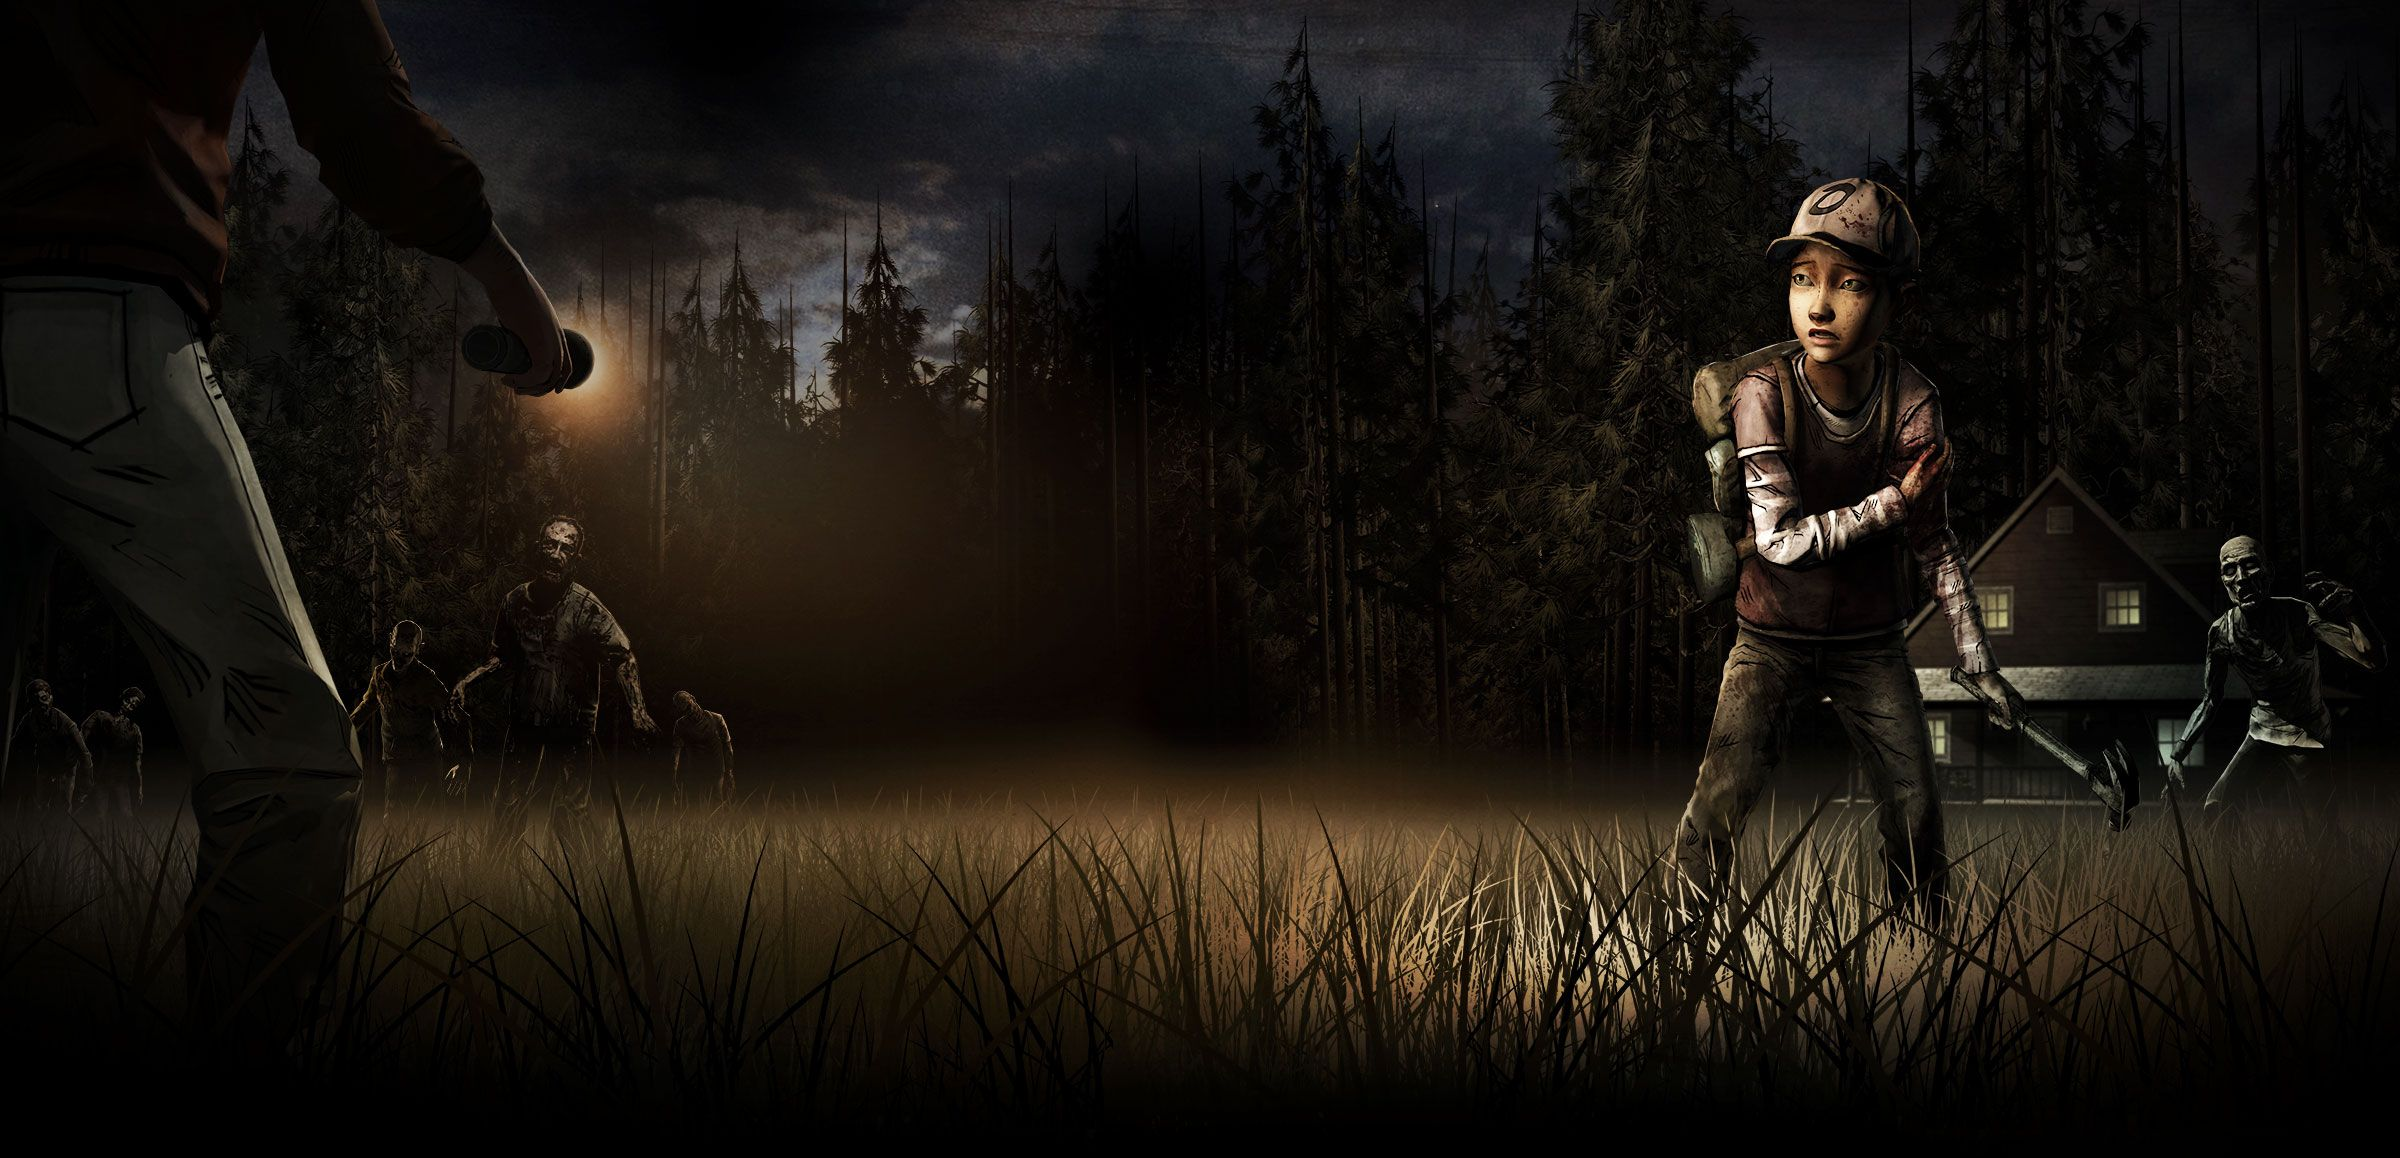 The Walking Dead Video Game Wallpaper The Walking Dead